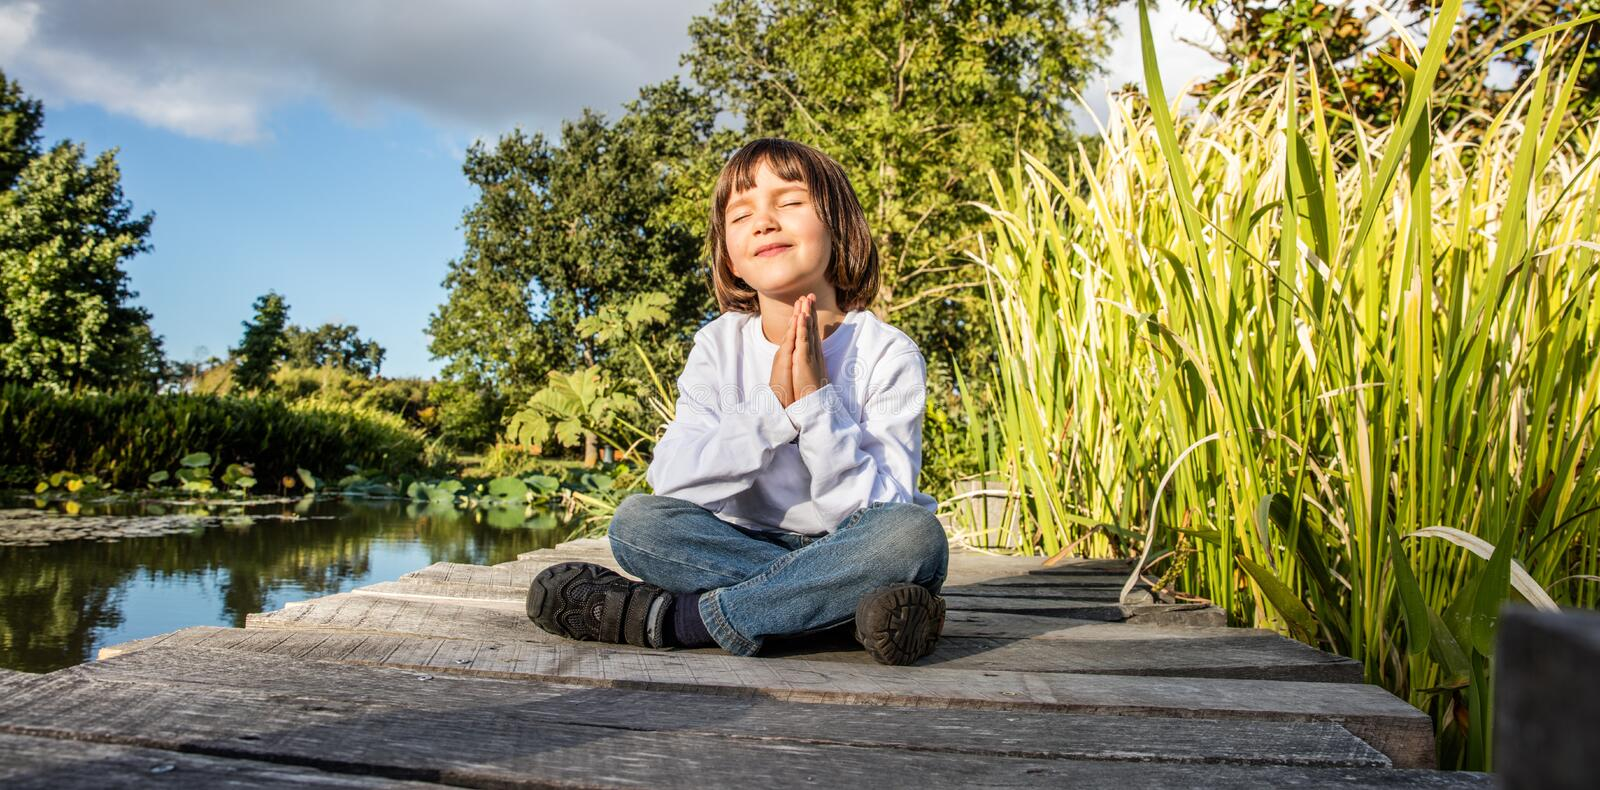 Zen young yoga child meditating alone to breathe near water stock photo